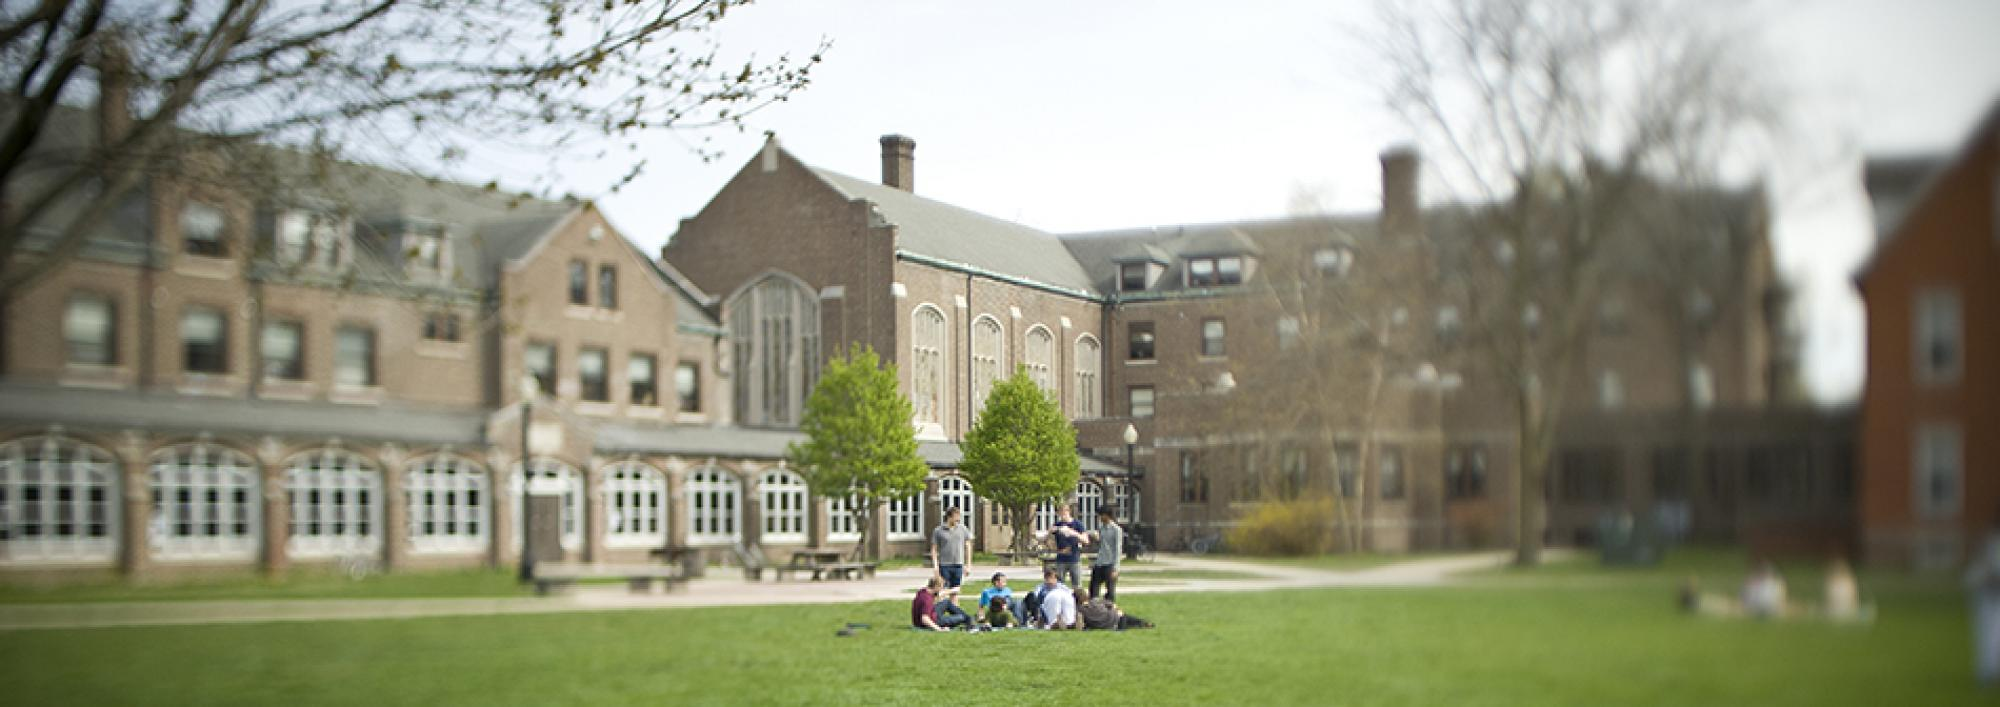 Students gather in front of Cleveland Hall